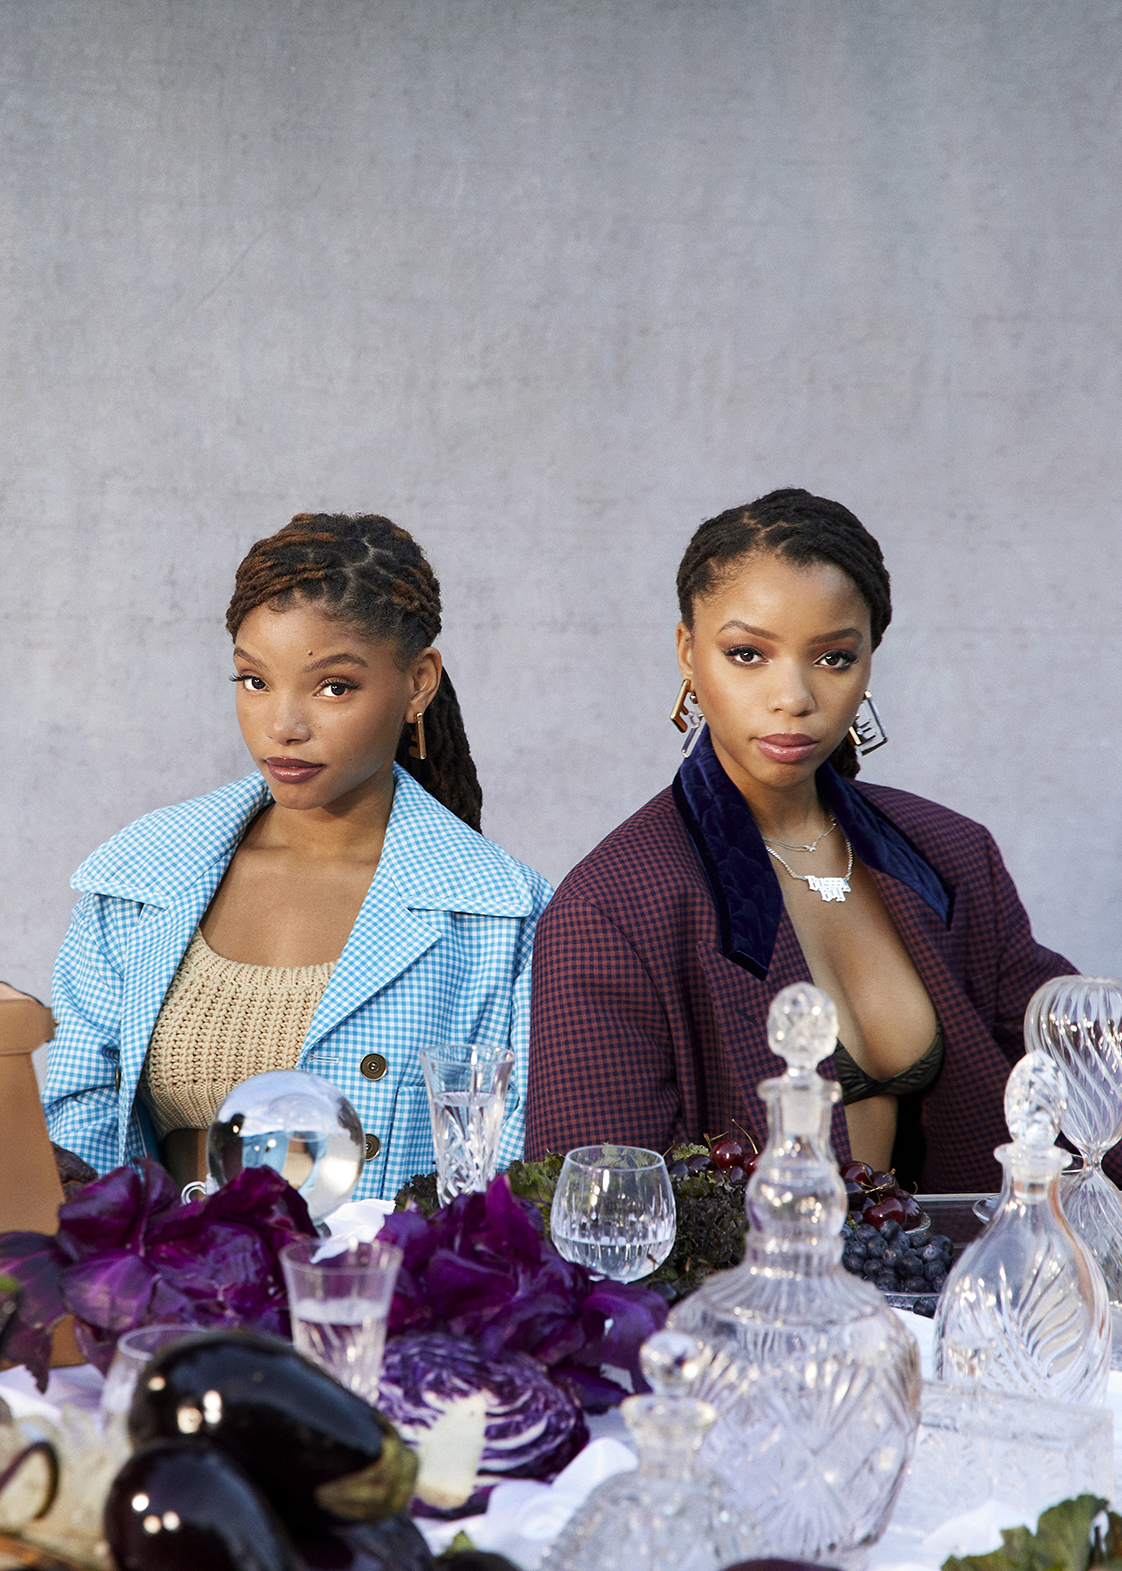 Fendi MeAndMyPeekaboo Campaign with Chloe x Halle film and Photos